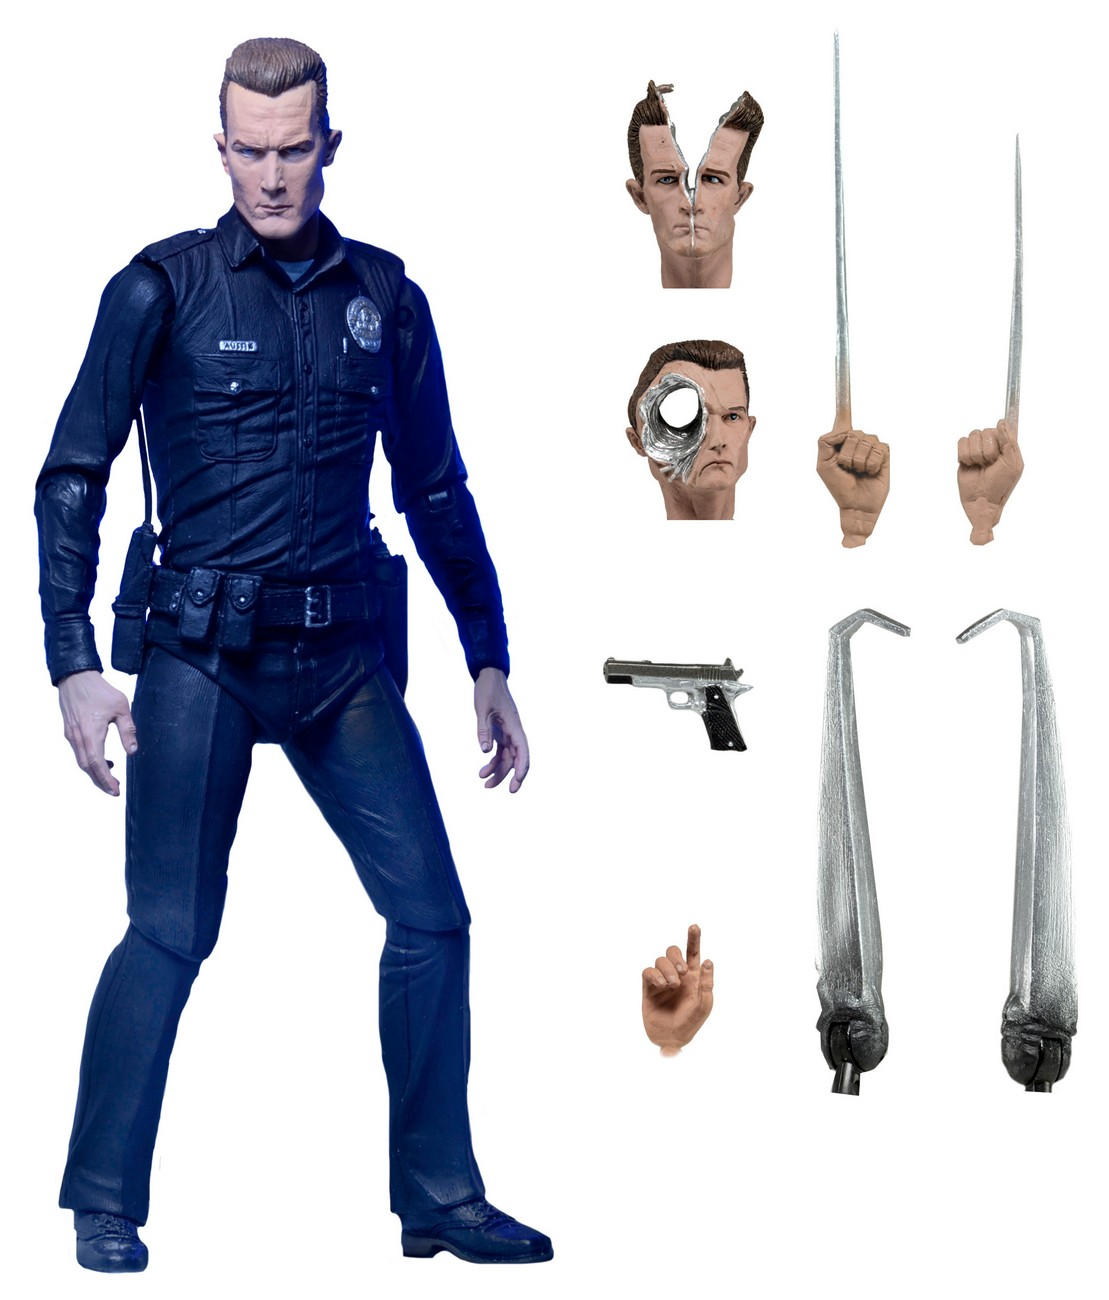 NECA Toys Reissues Terminator 2 Ultimate T-1000 Figure